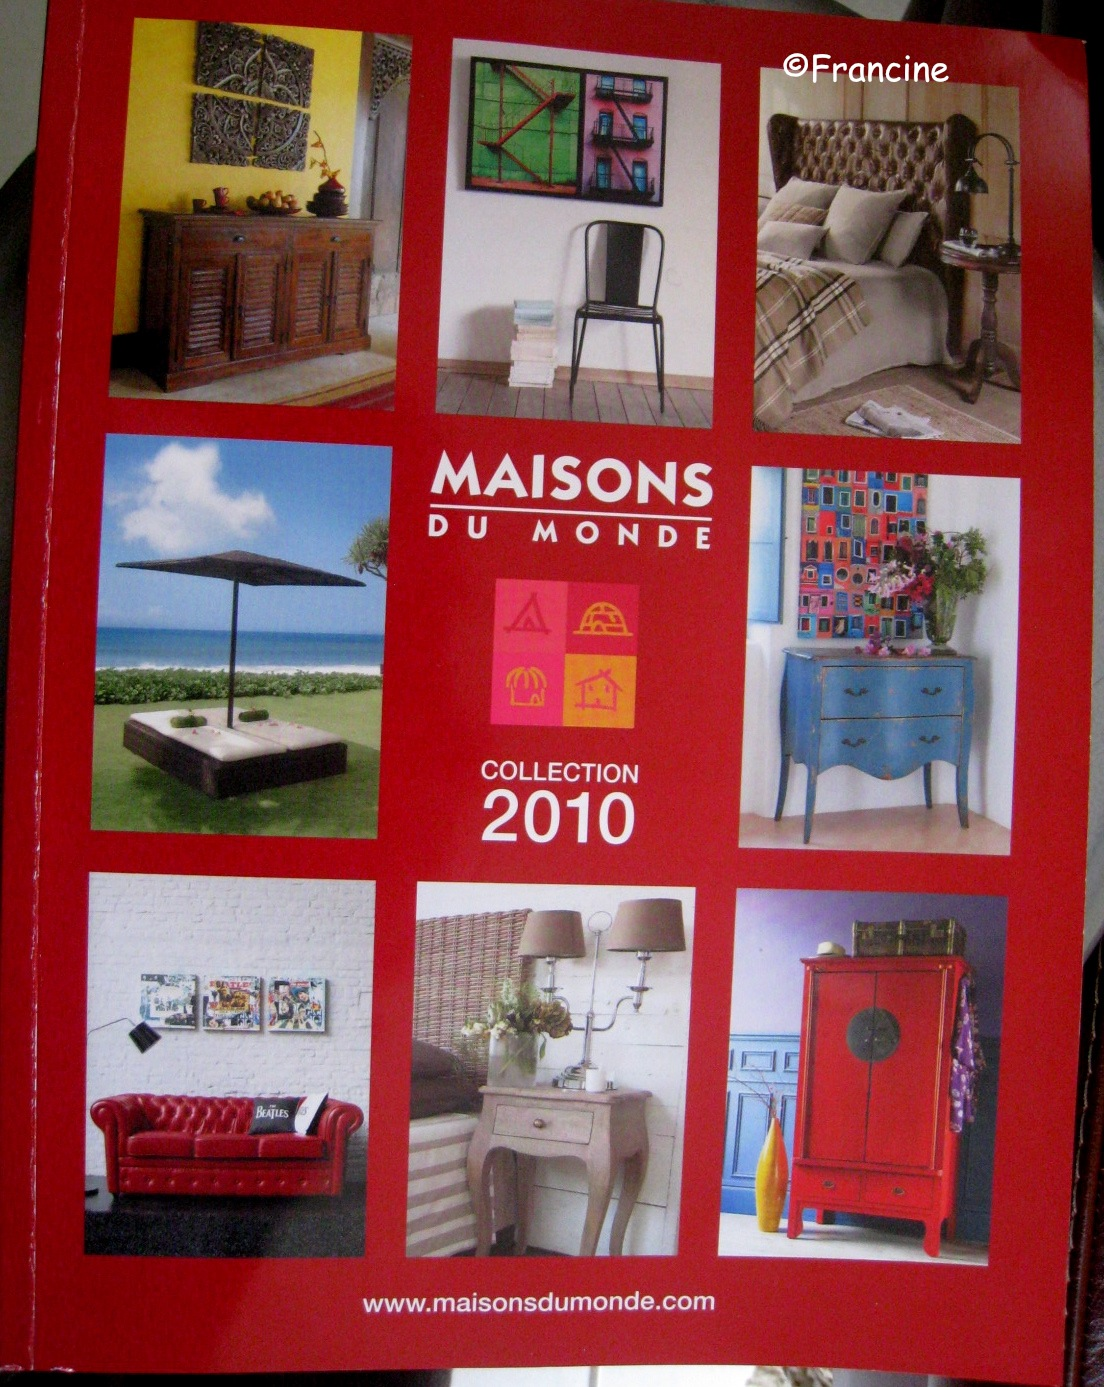 dans le catalogue maisons du monde d coupage et collage. Black Bedroom Furniture Sets. Home Design Ideas